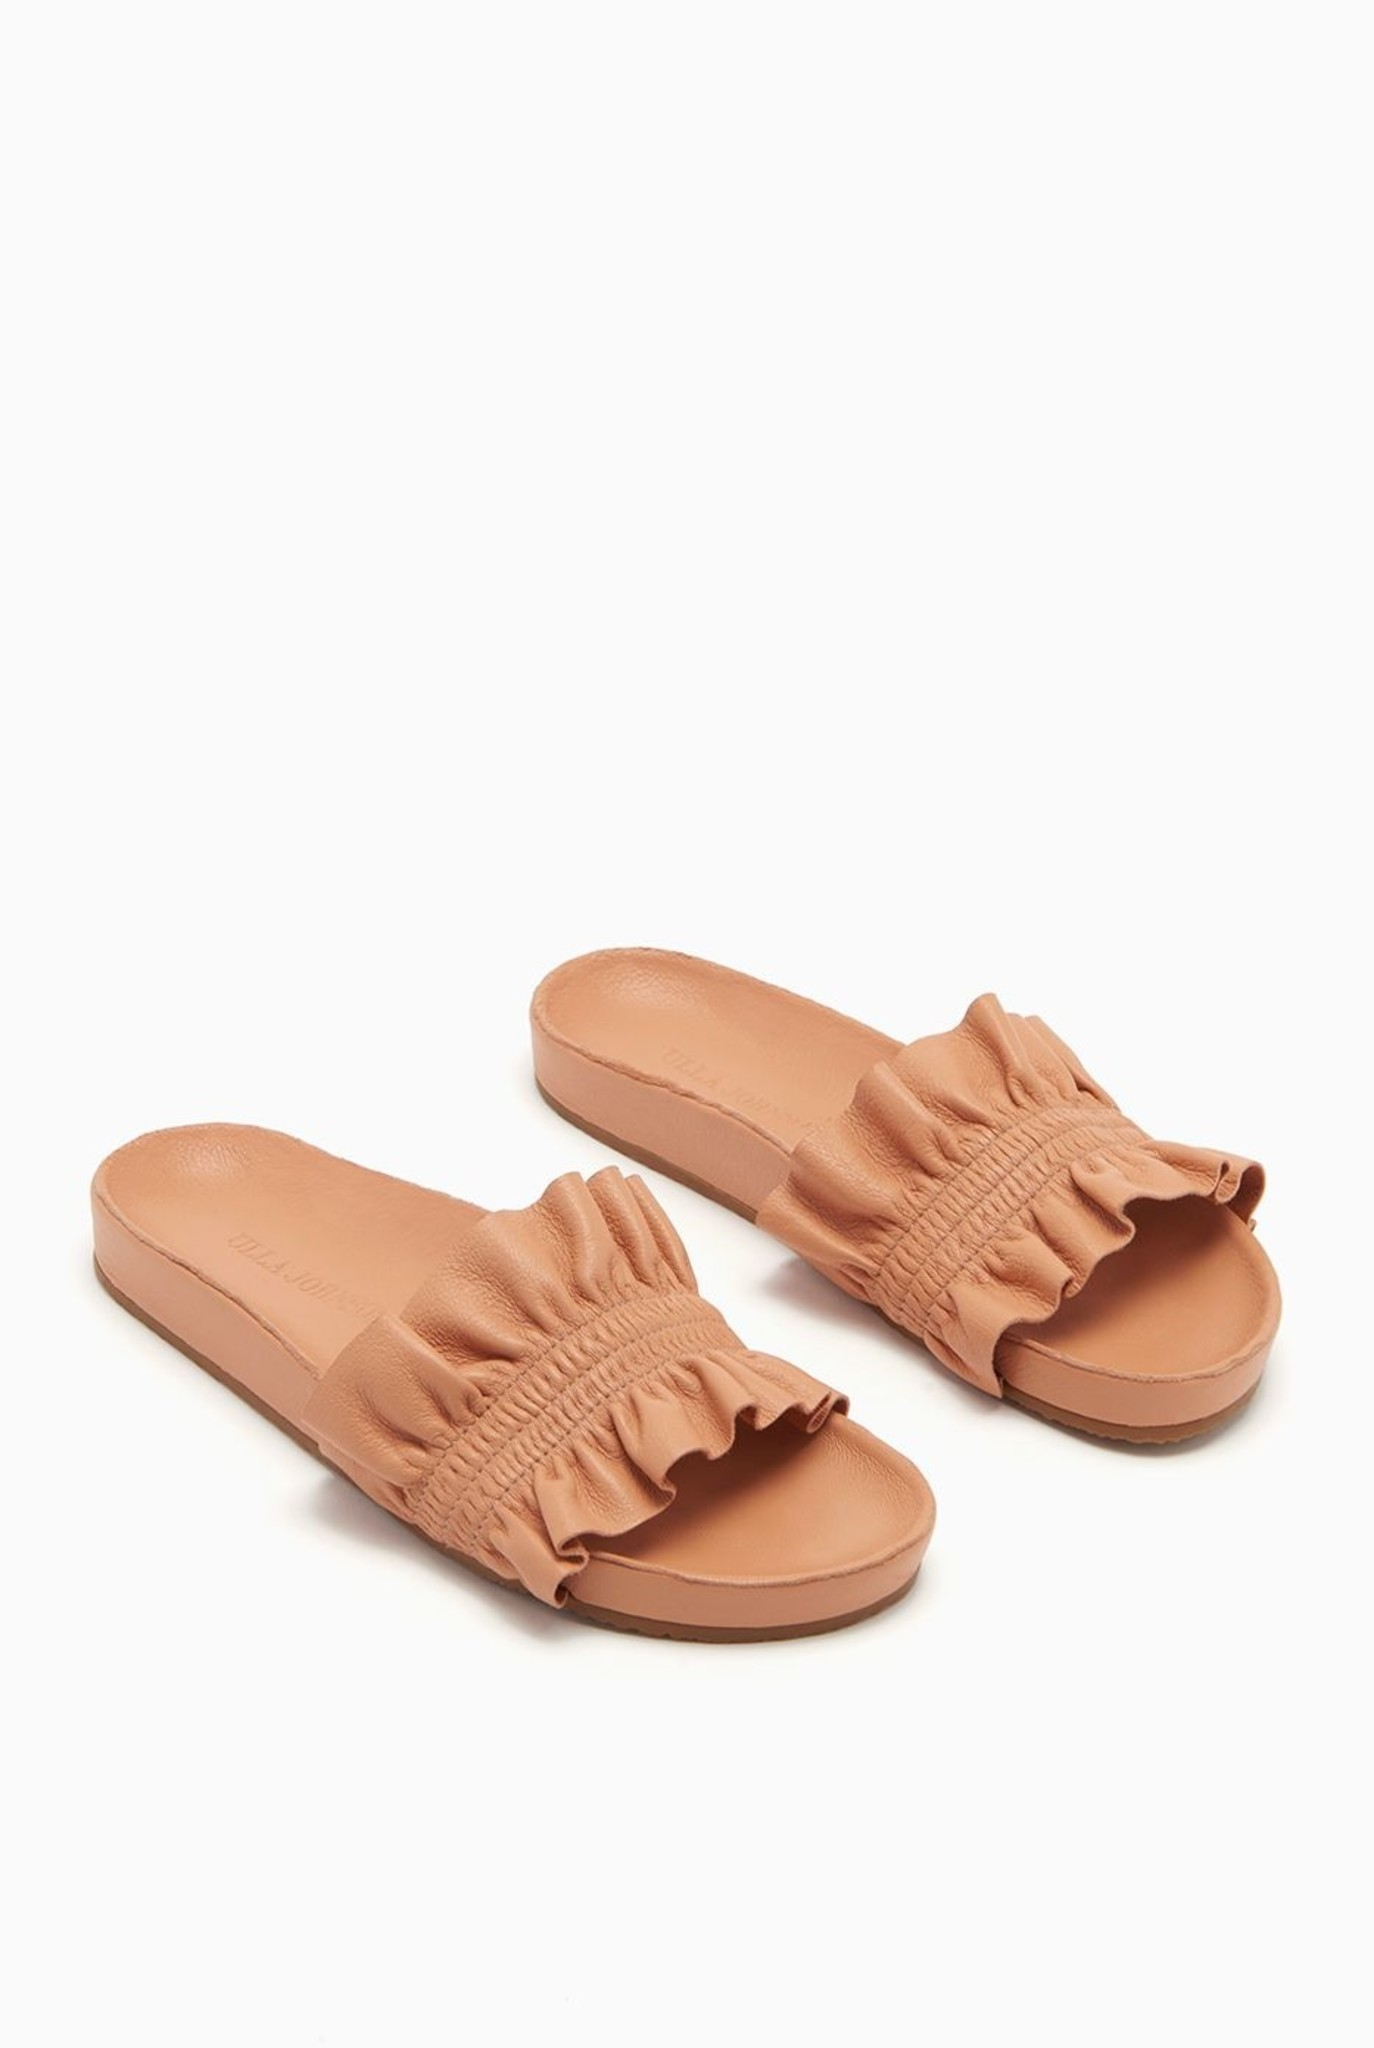 Rex sandal Natural